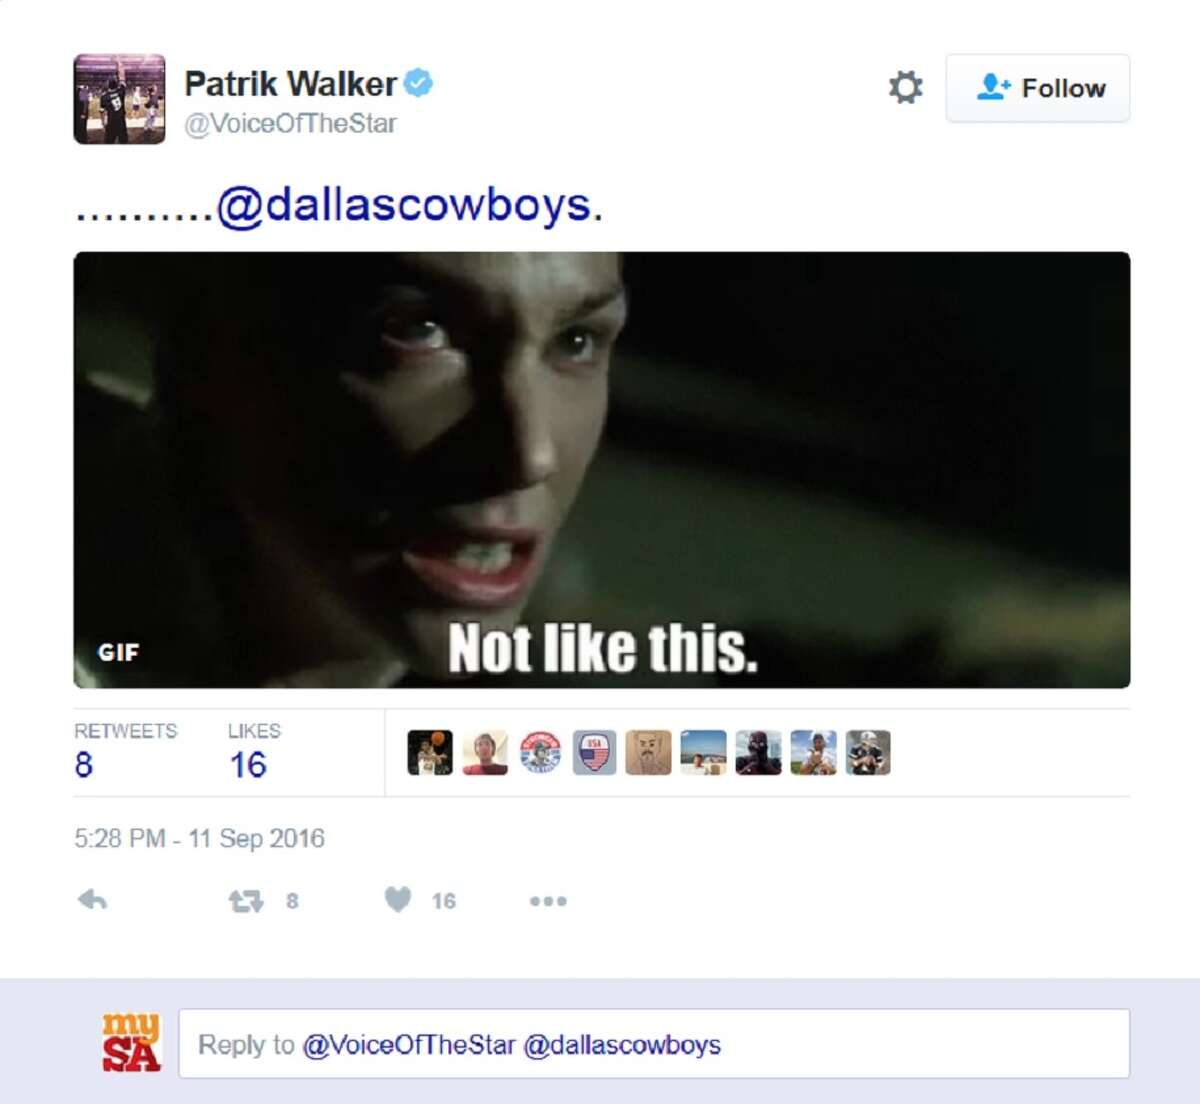 Dallas Cowboys fans vent their frustration on Twitter following a close loss to the New York Giants Sunday, Sept. 11, 2016.